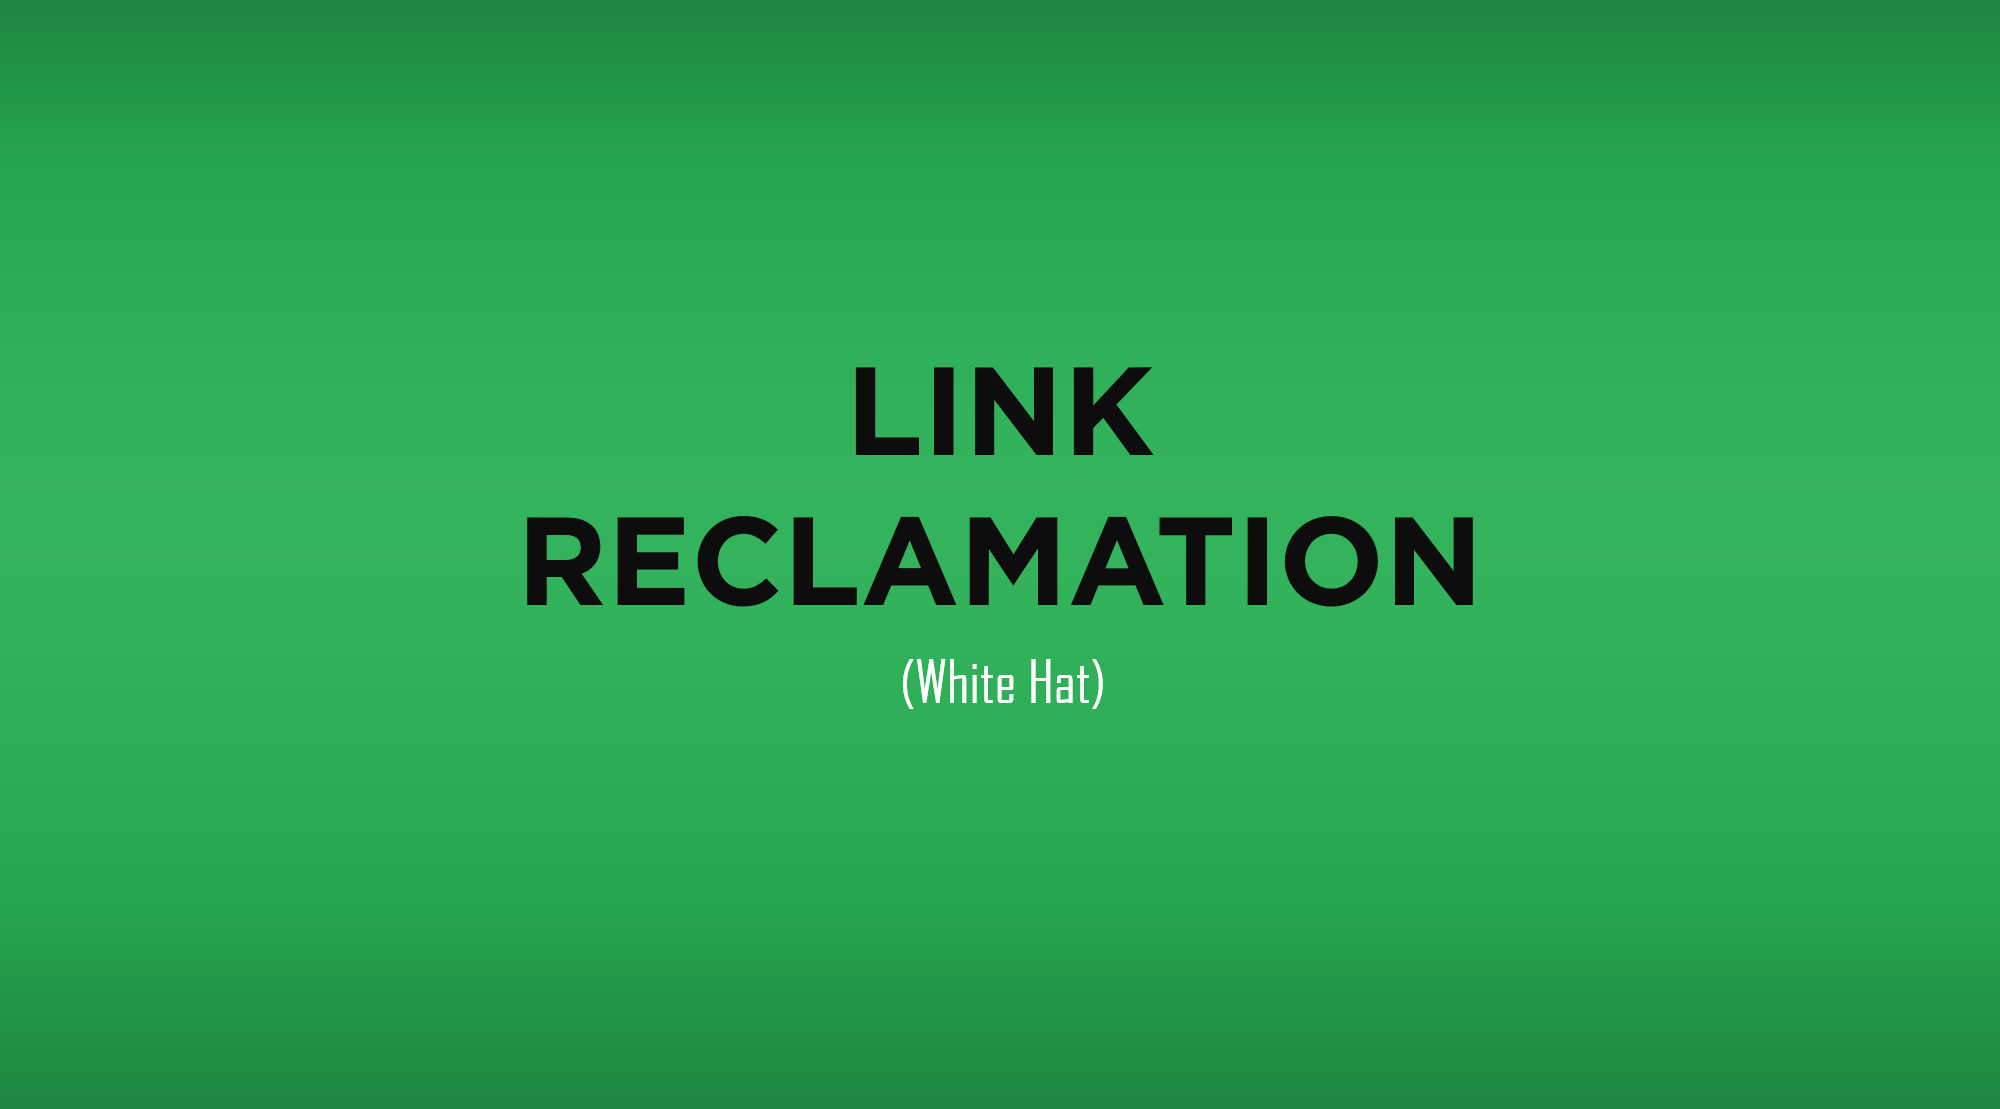 link-reclamation